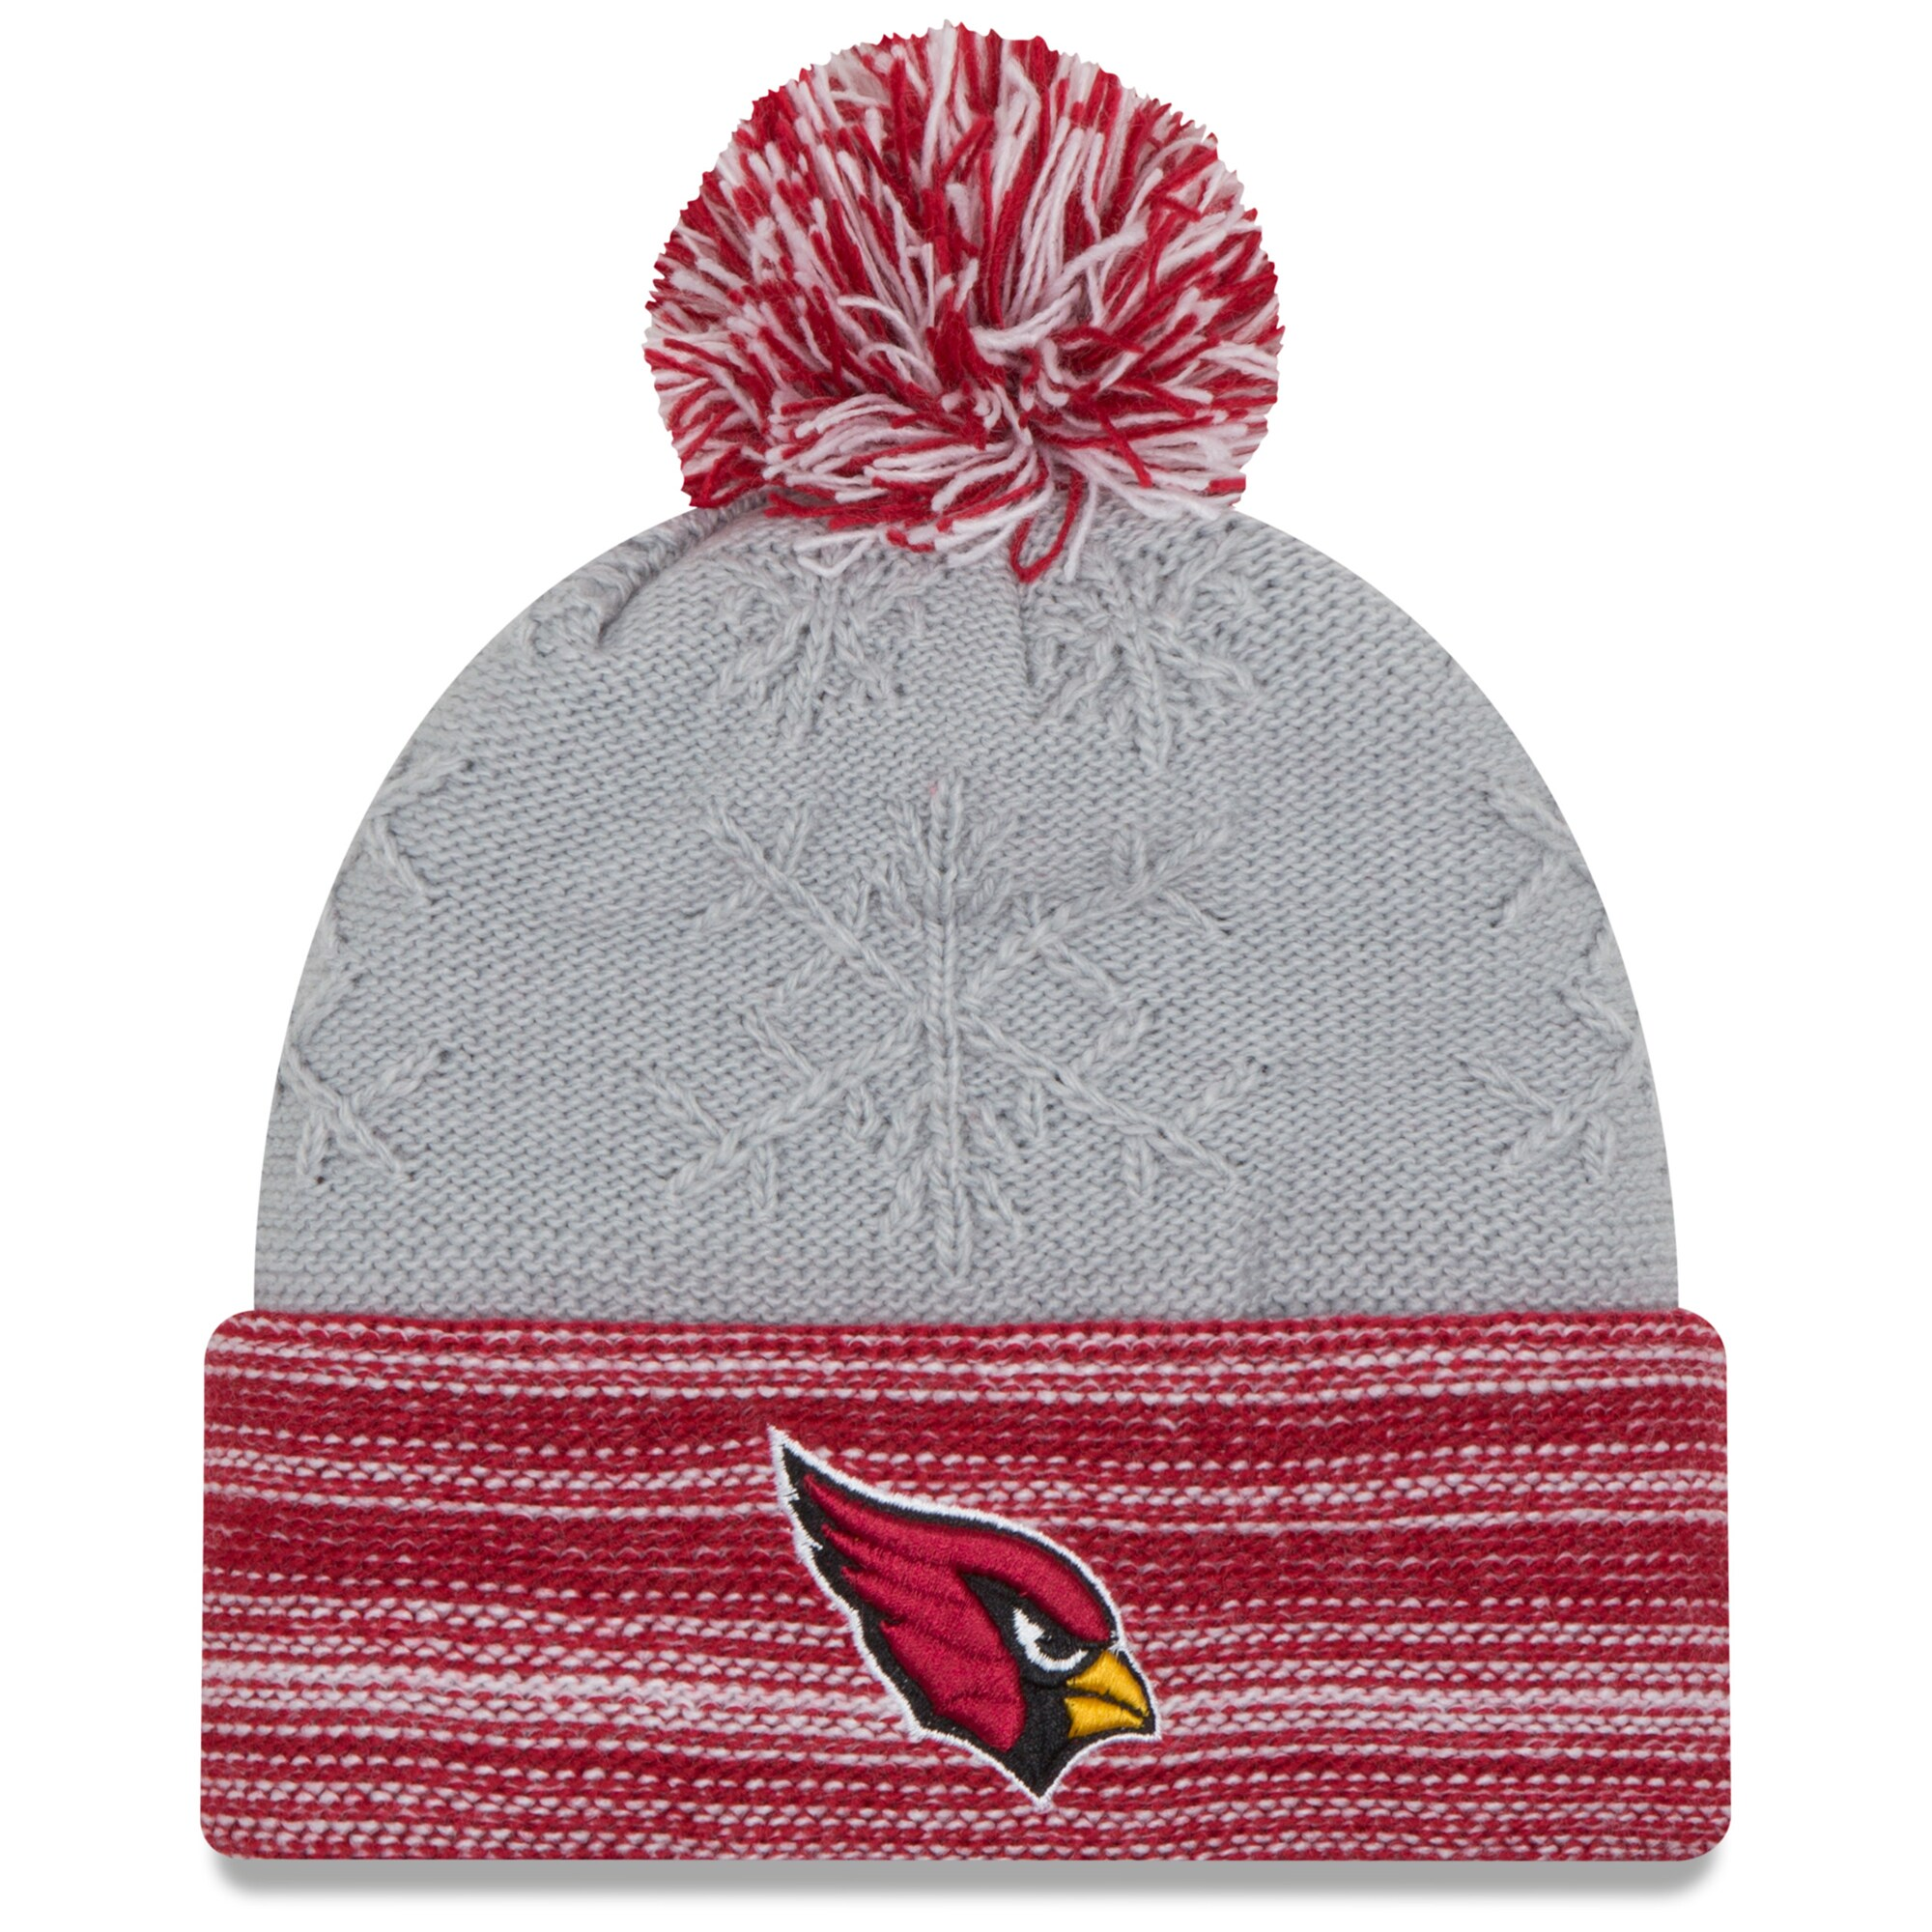 Arizona Cardinals New Era Women's Snow Crown Redux Cuffed Knit Hat with Pom - Gray/Cardinal